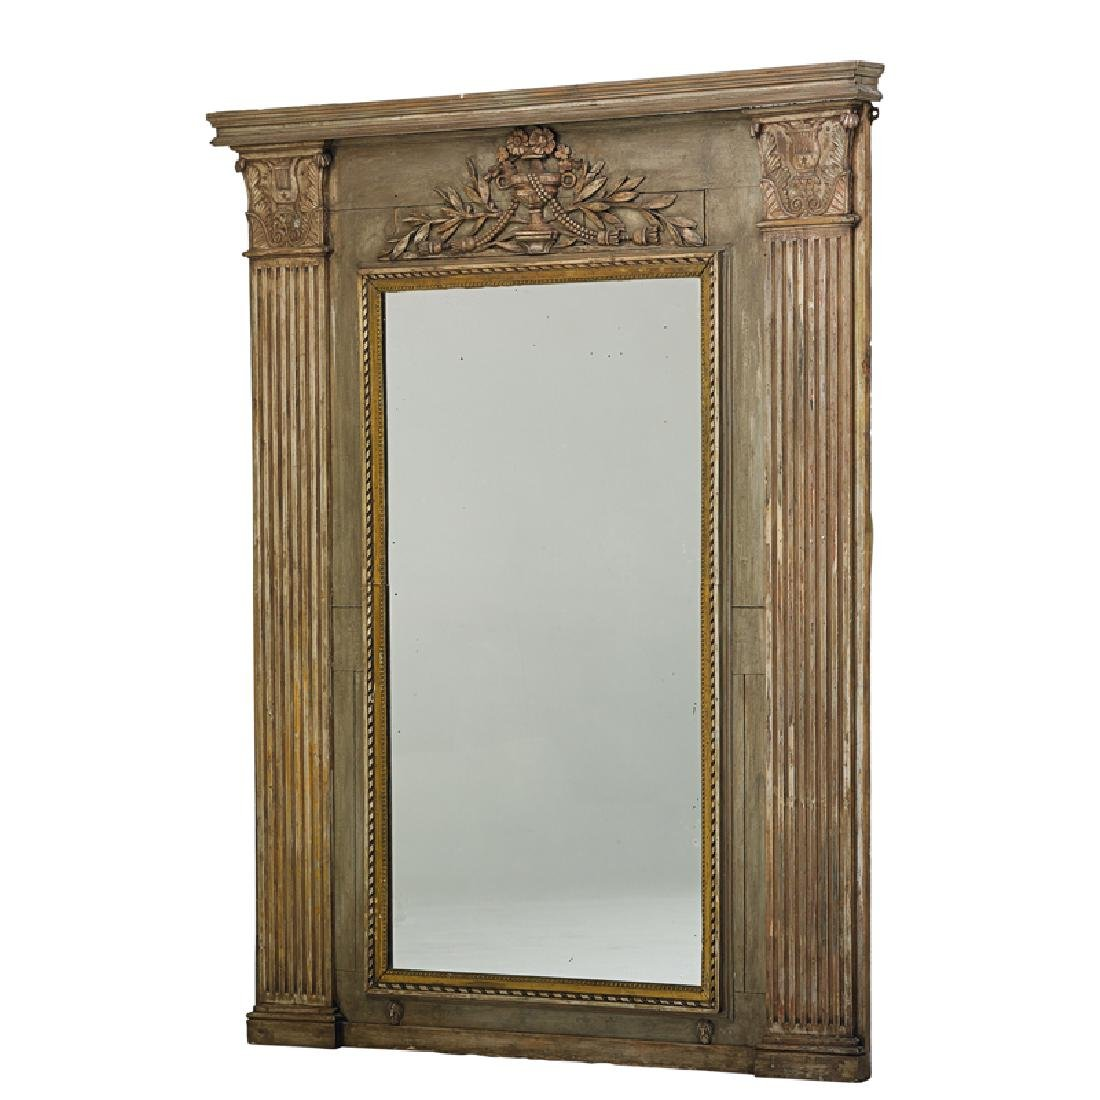 LOUIS XVI STYLE PAINTED MIRROR